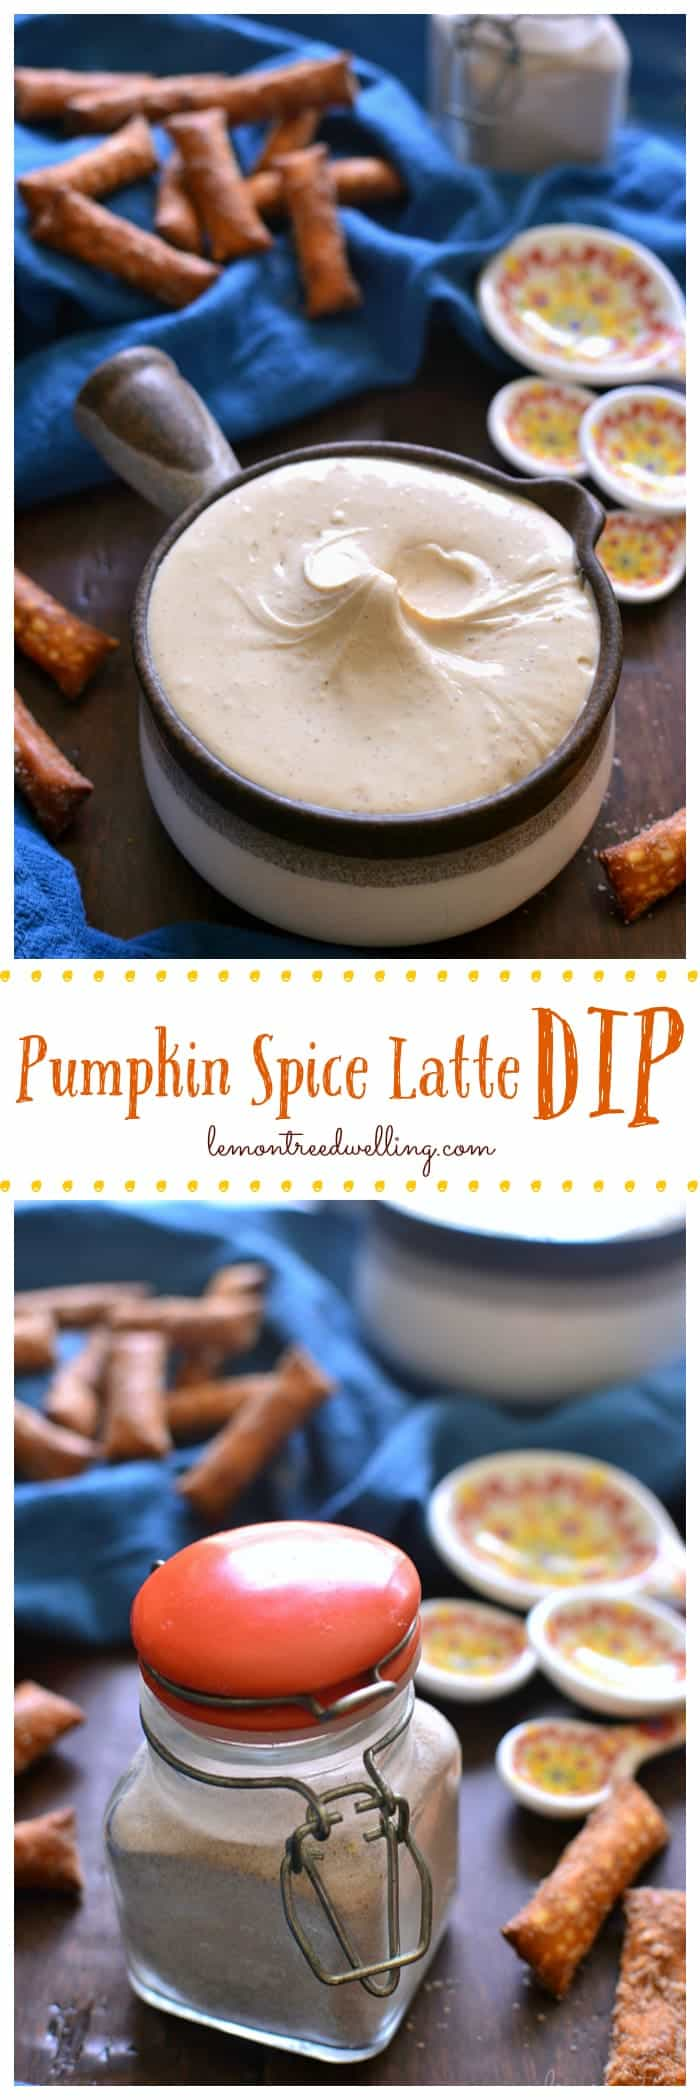 This Pumpkin Spice Latte Dip is sweet, creamy, and reminiscent of the pumpkin spice lattes we know and love!